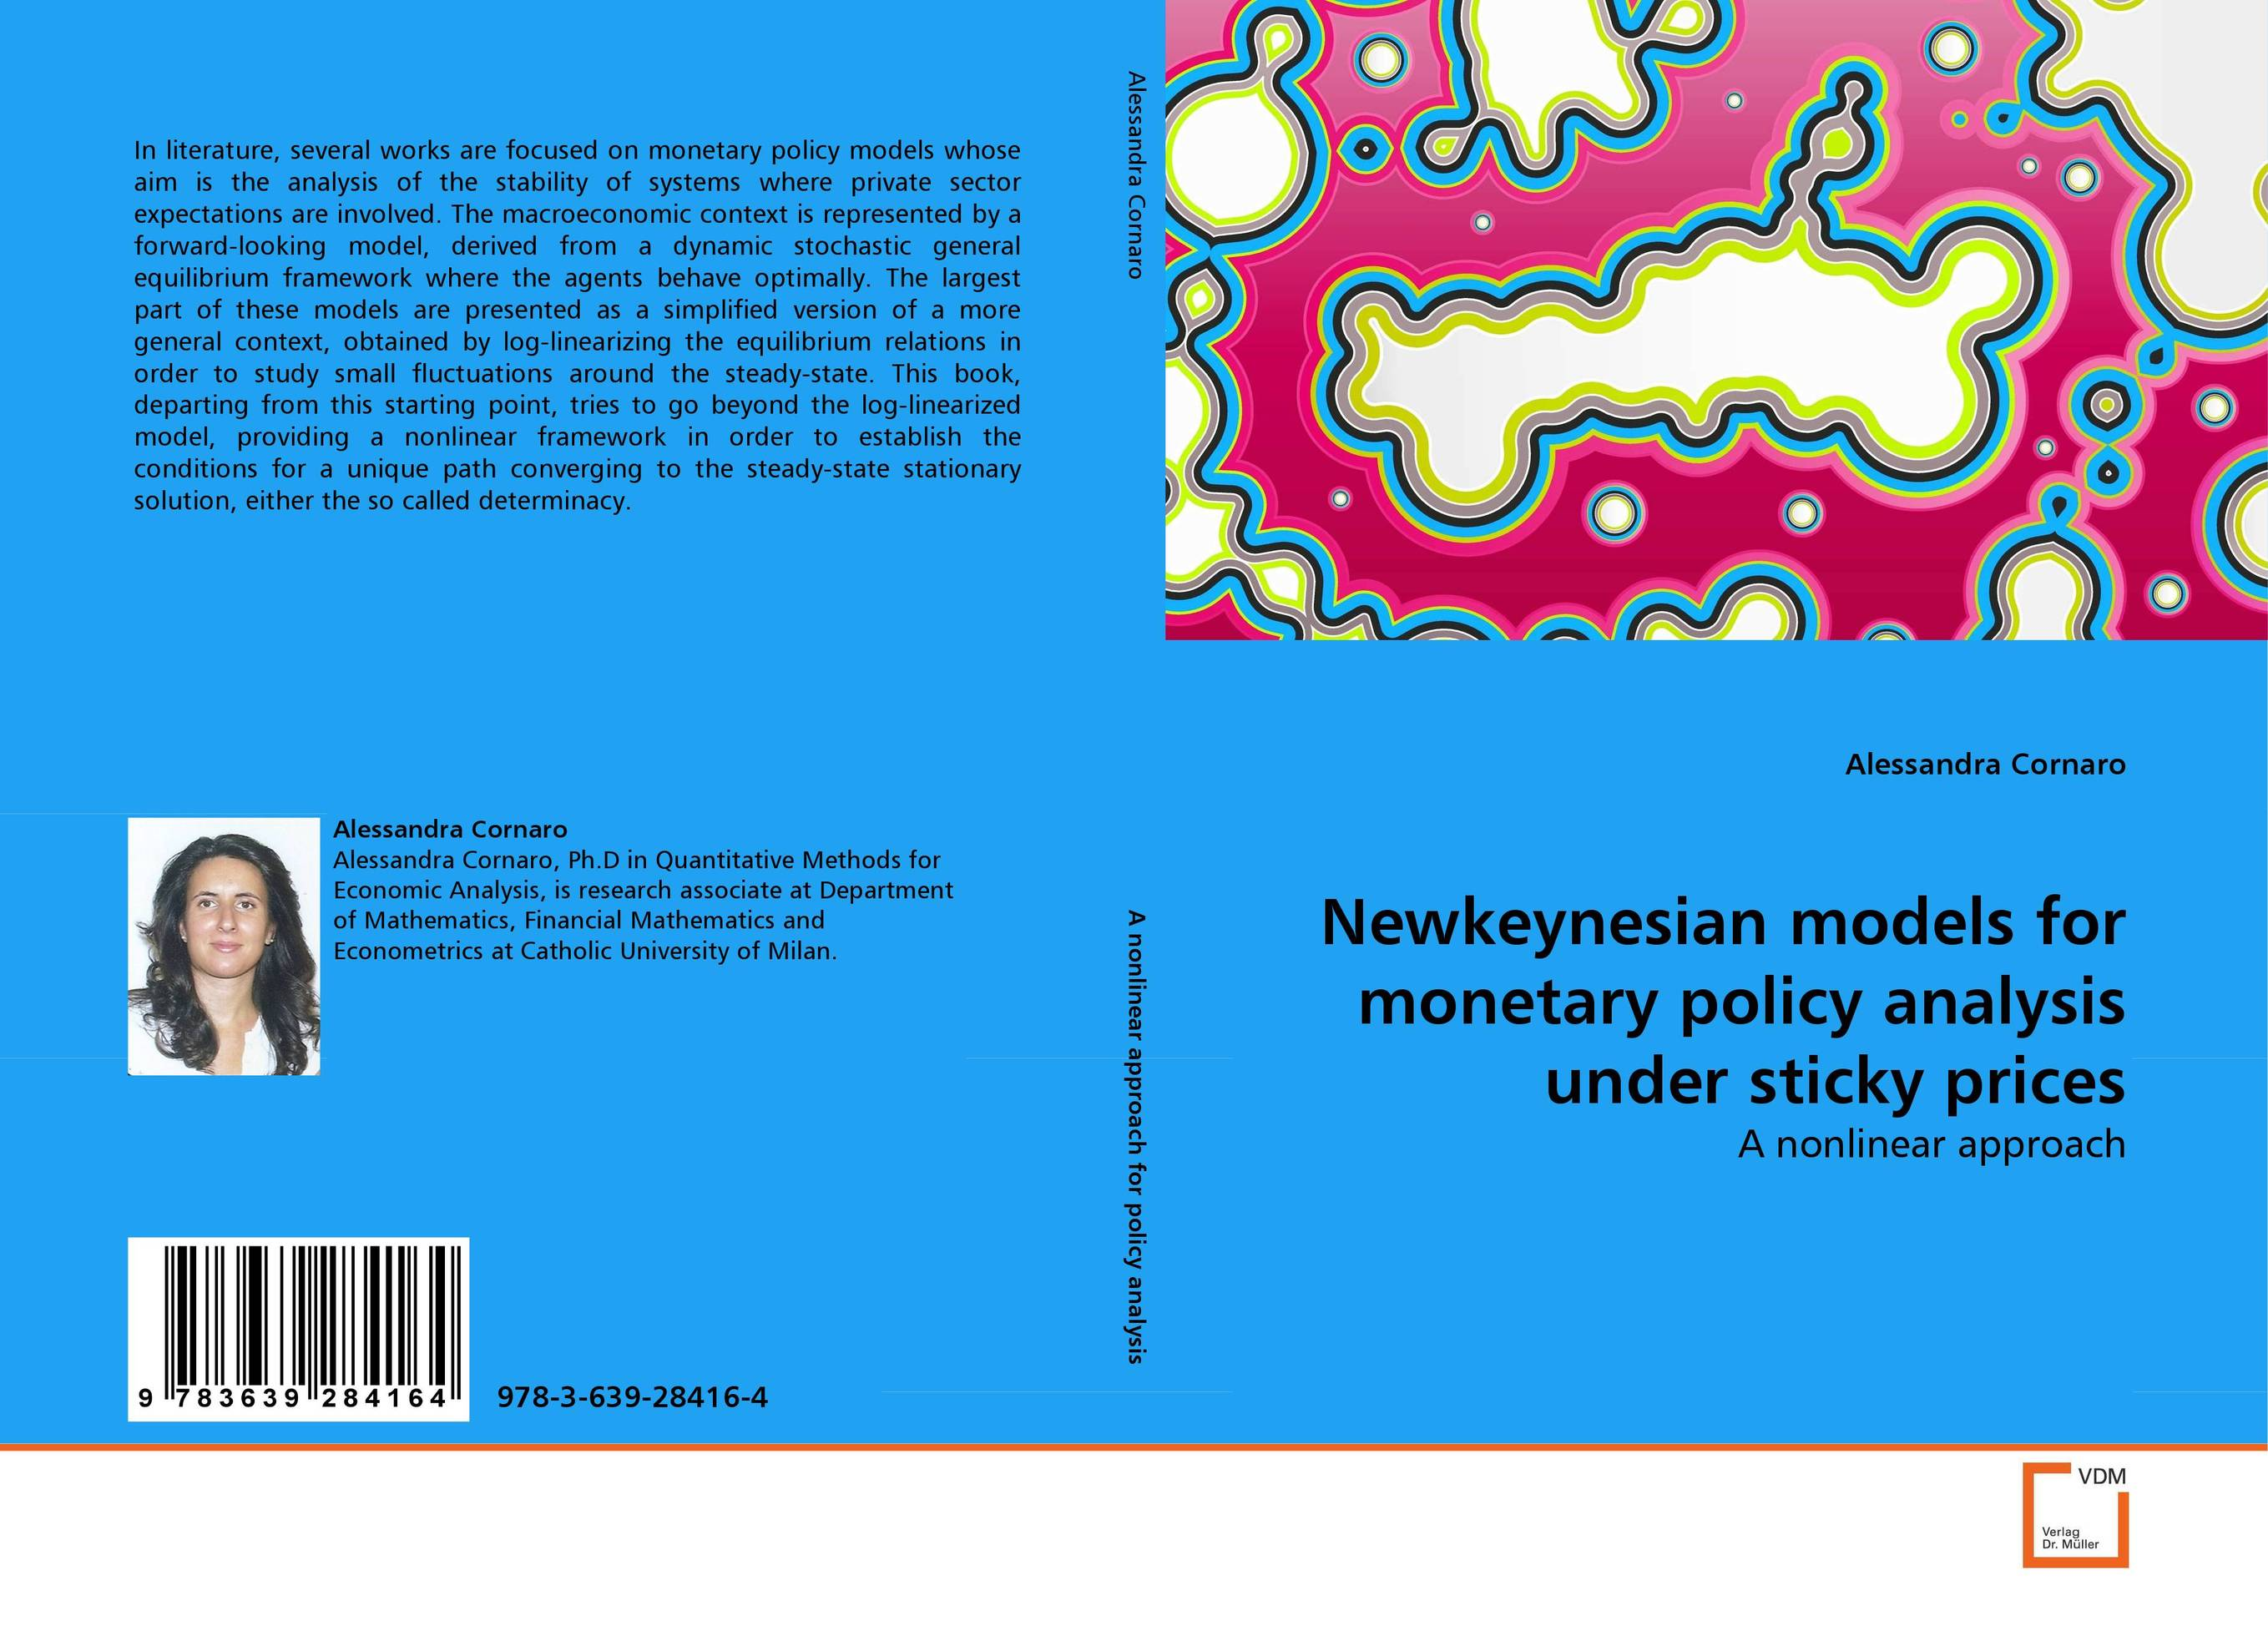 Newkeynesian models for monetary policy analysis under sticky prices